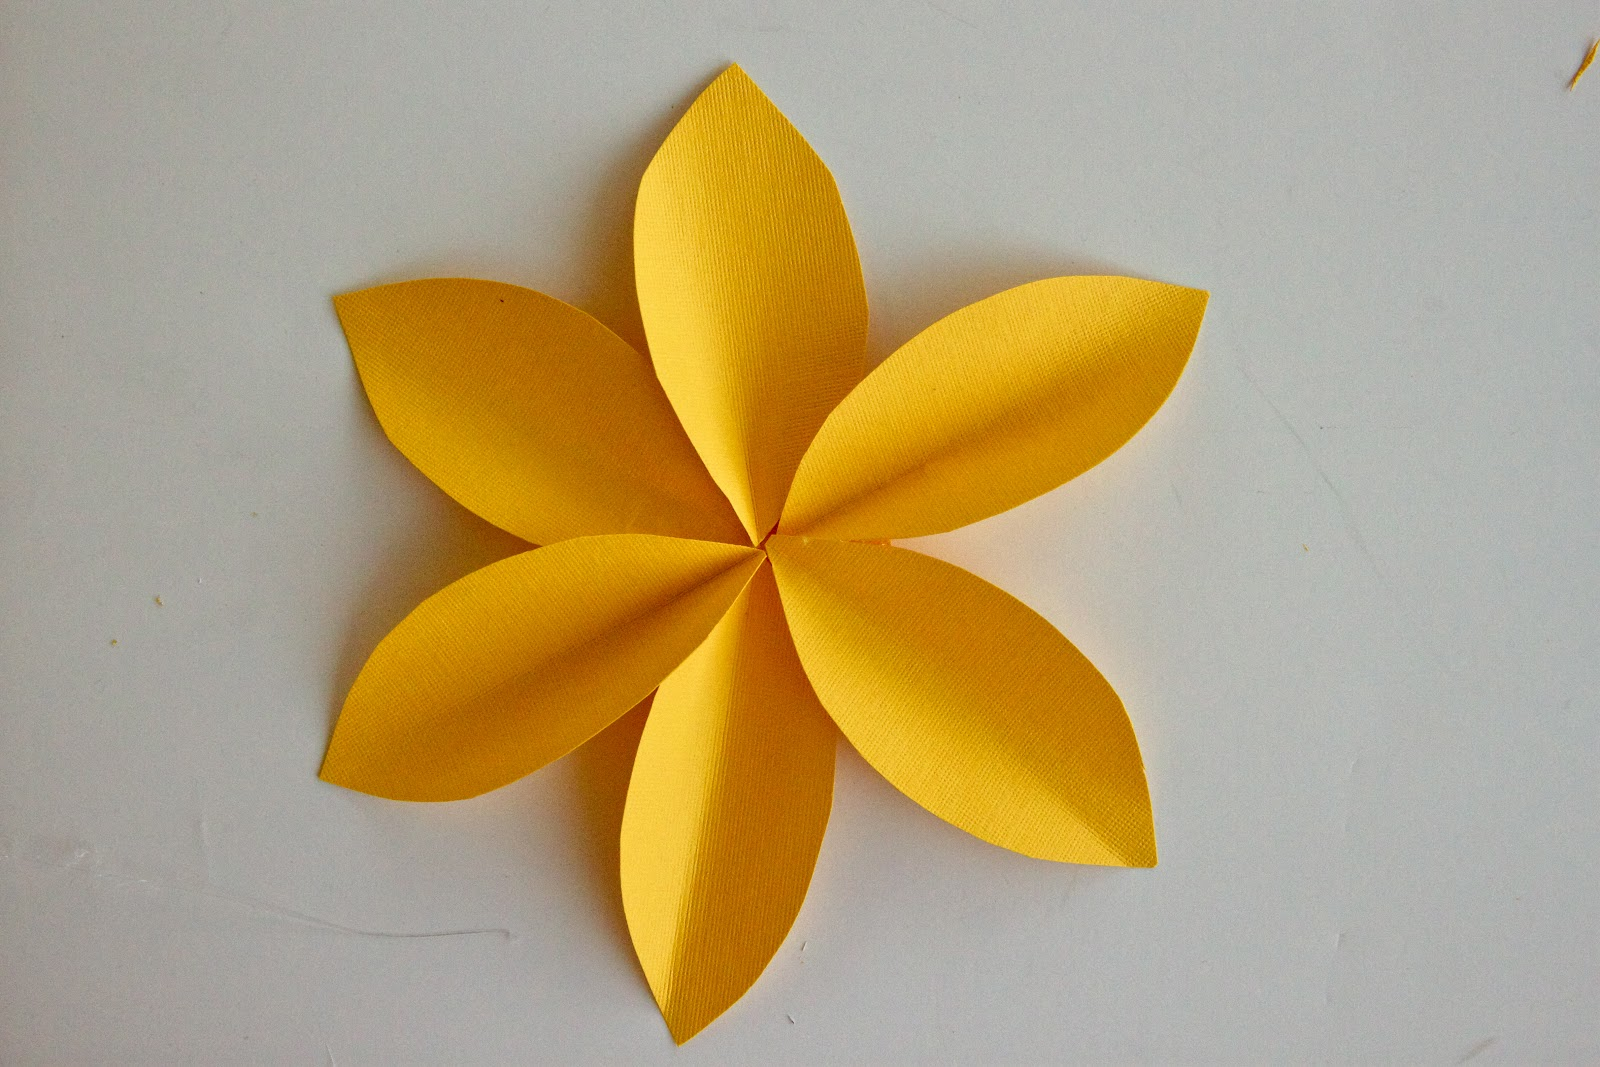 Paper Flower Wall Art - Inarace.net